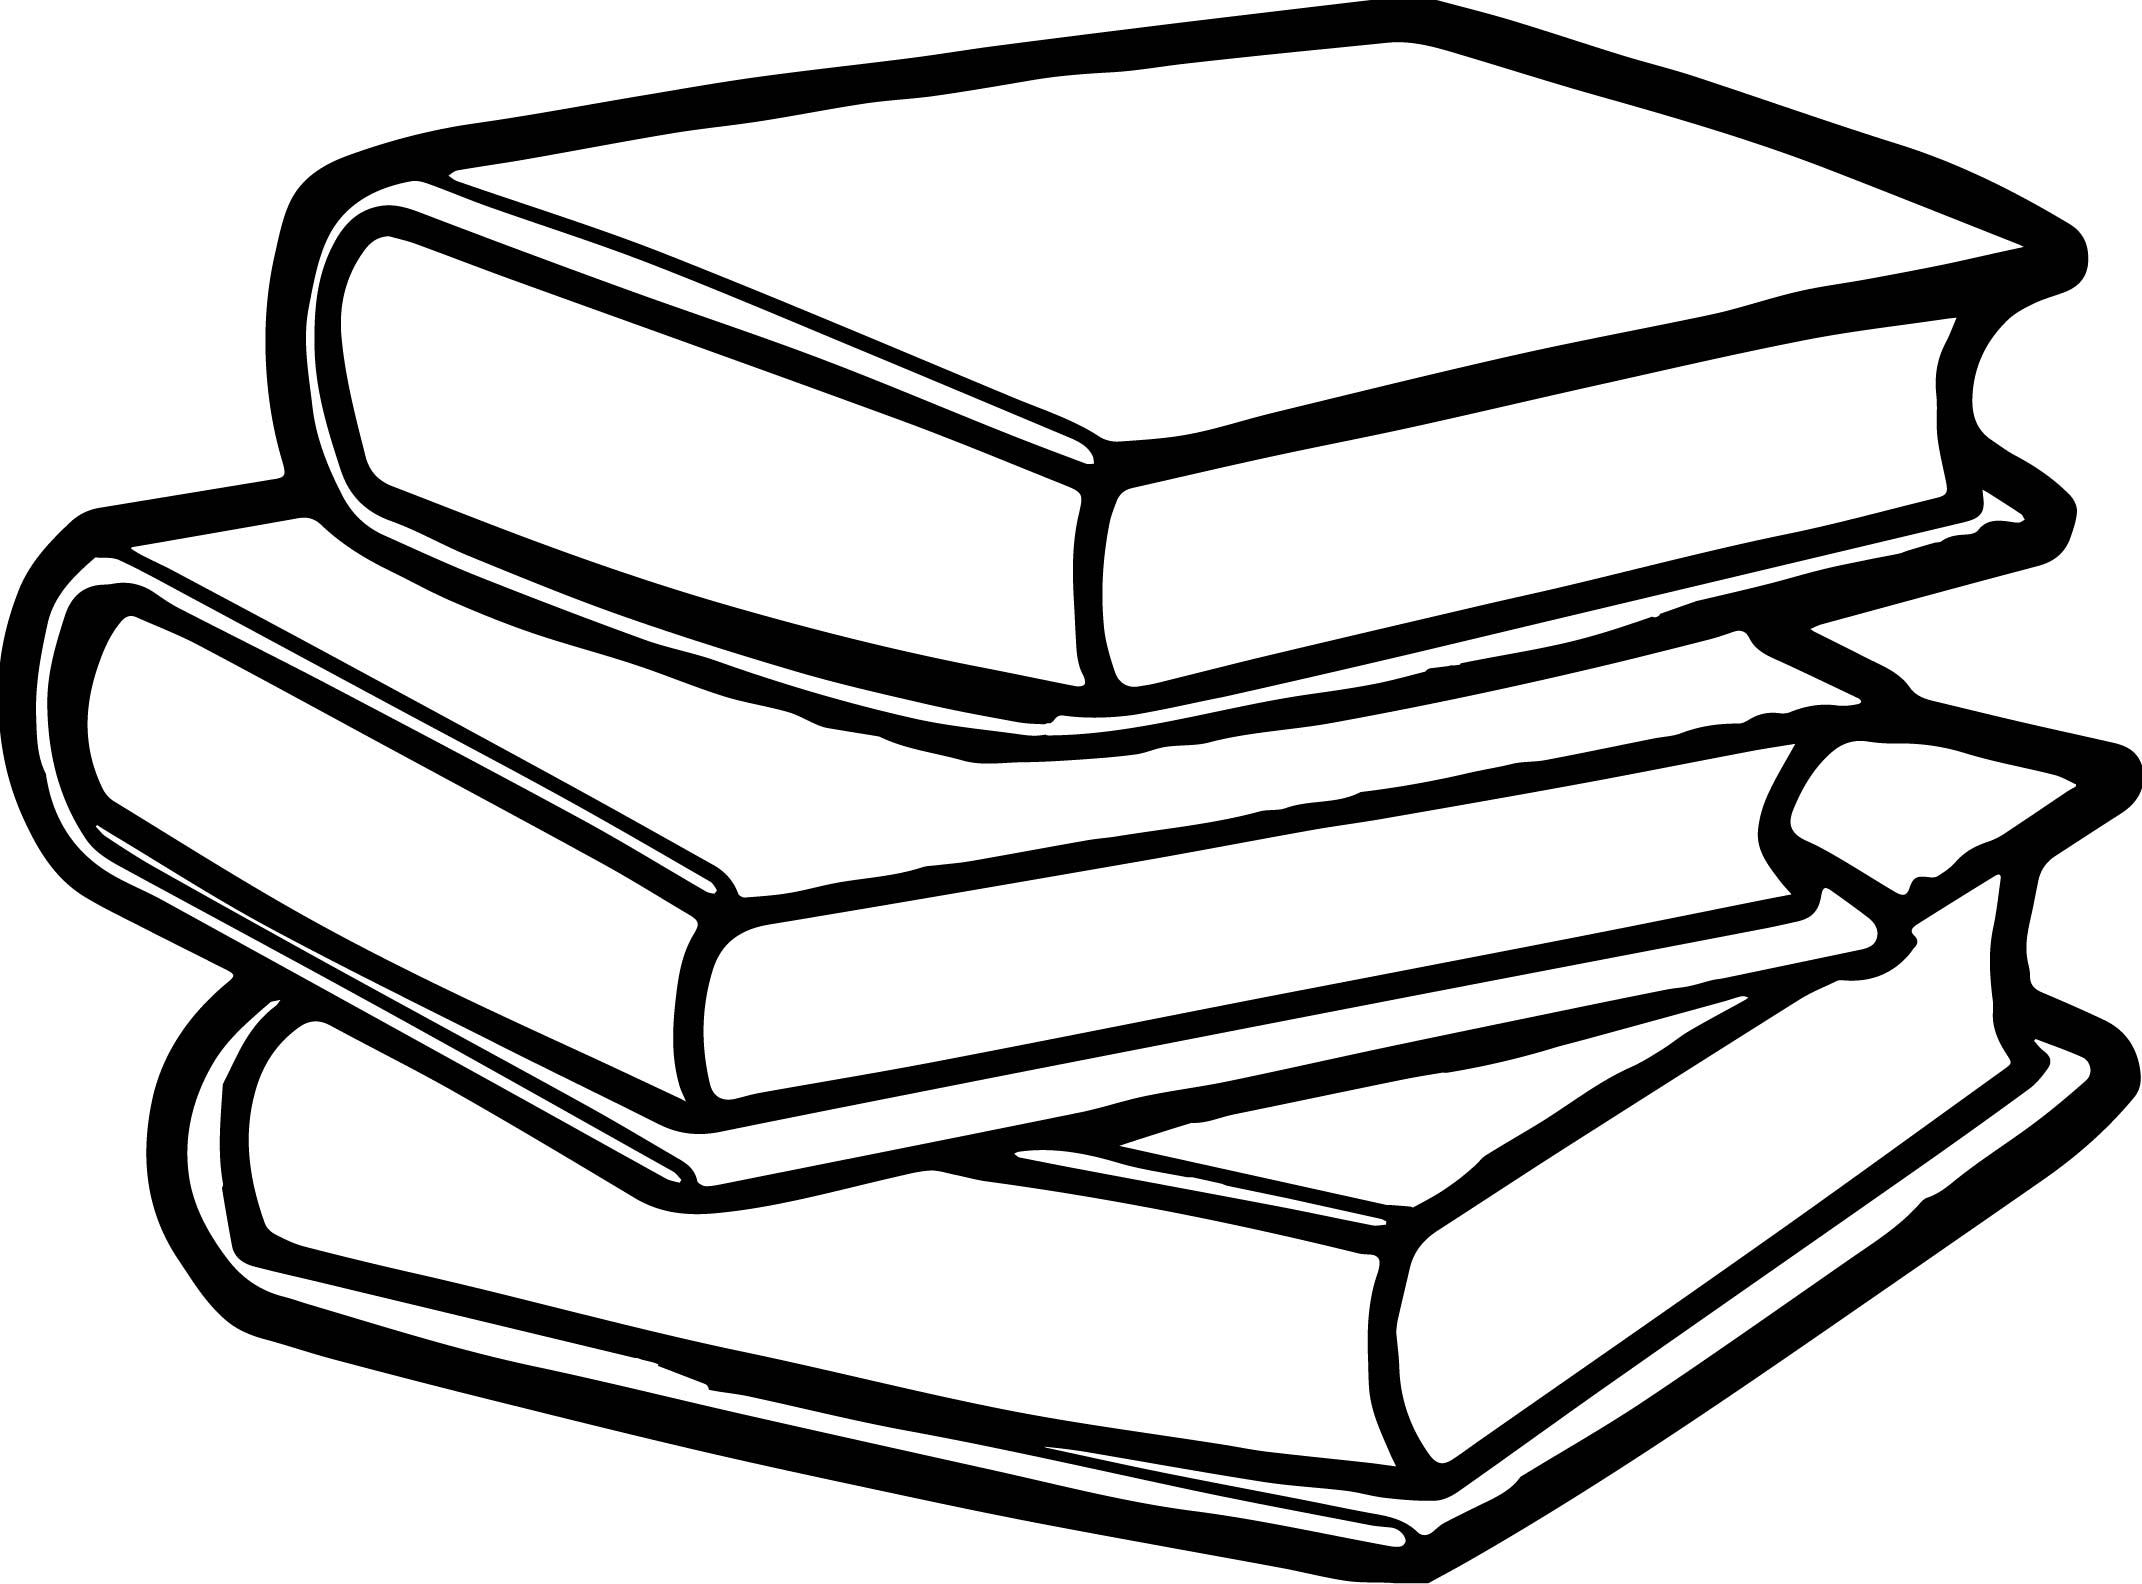 Books coloring pages best coloring pages for kids for Coloring page book